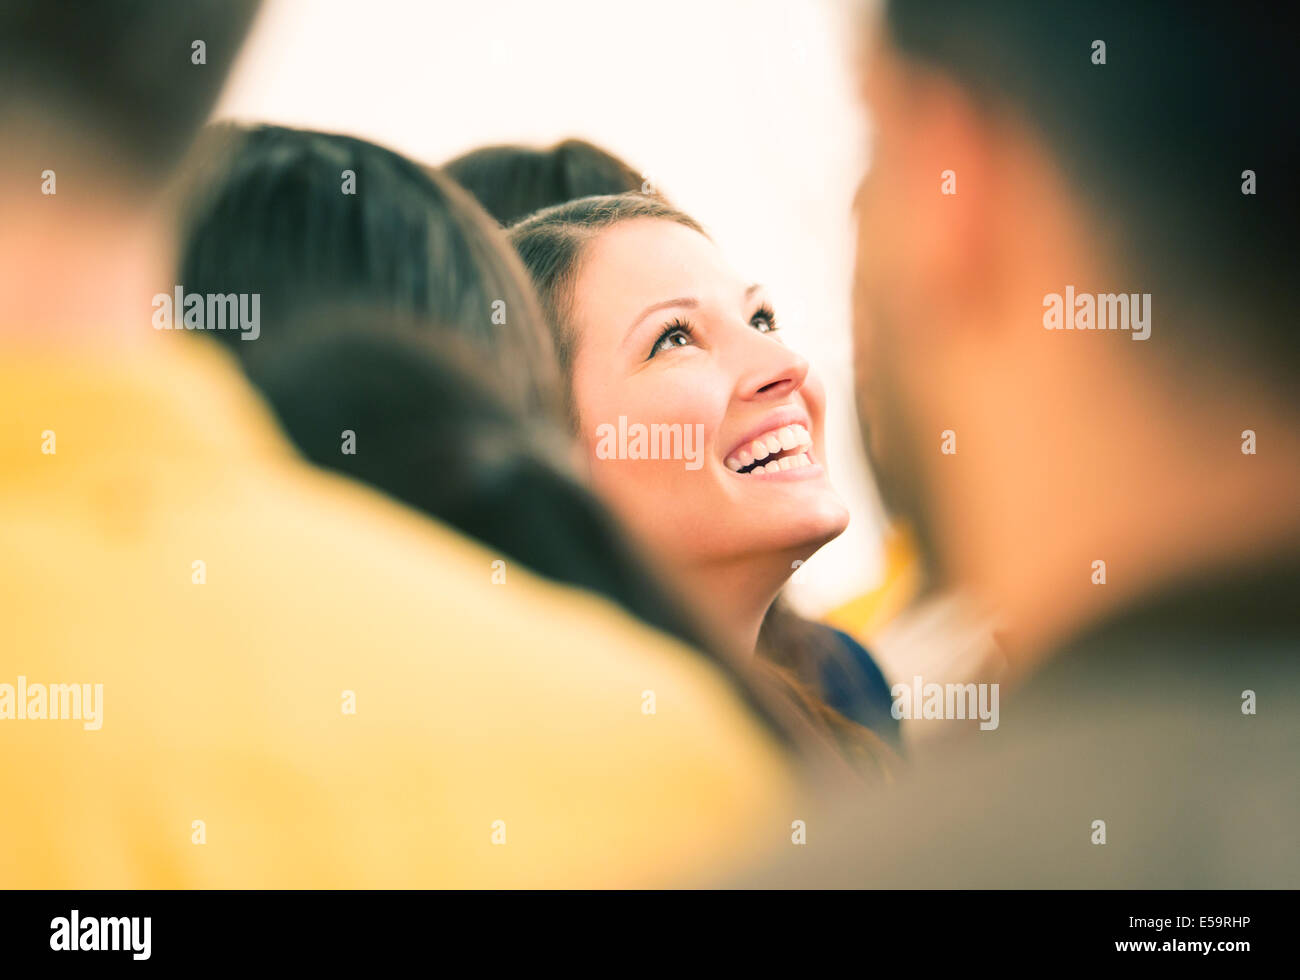 Enthusiastic woman looking up - Stock Image